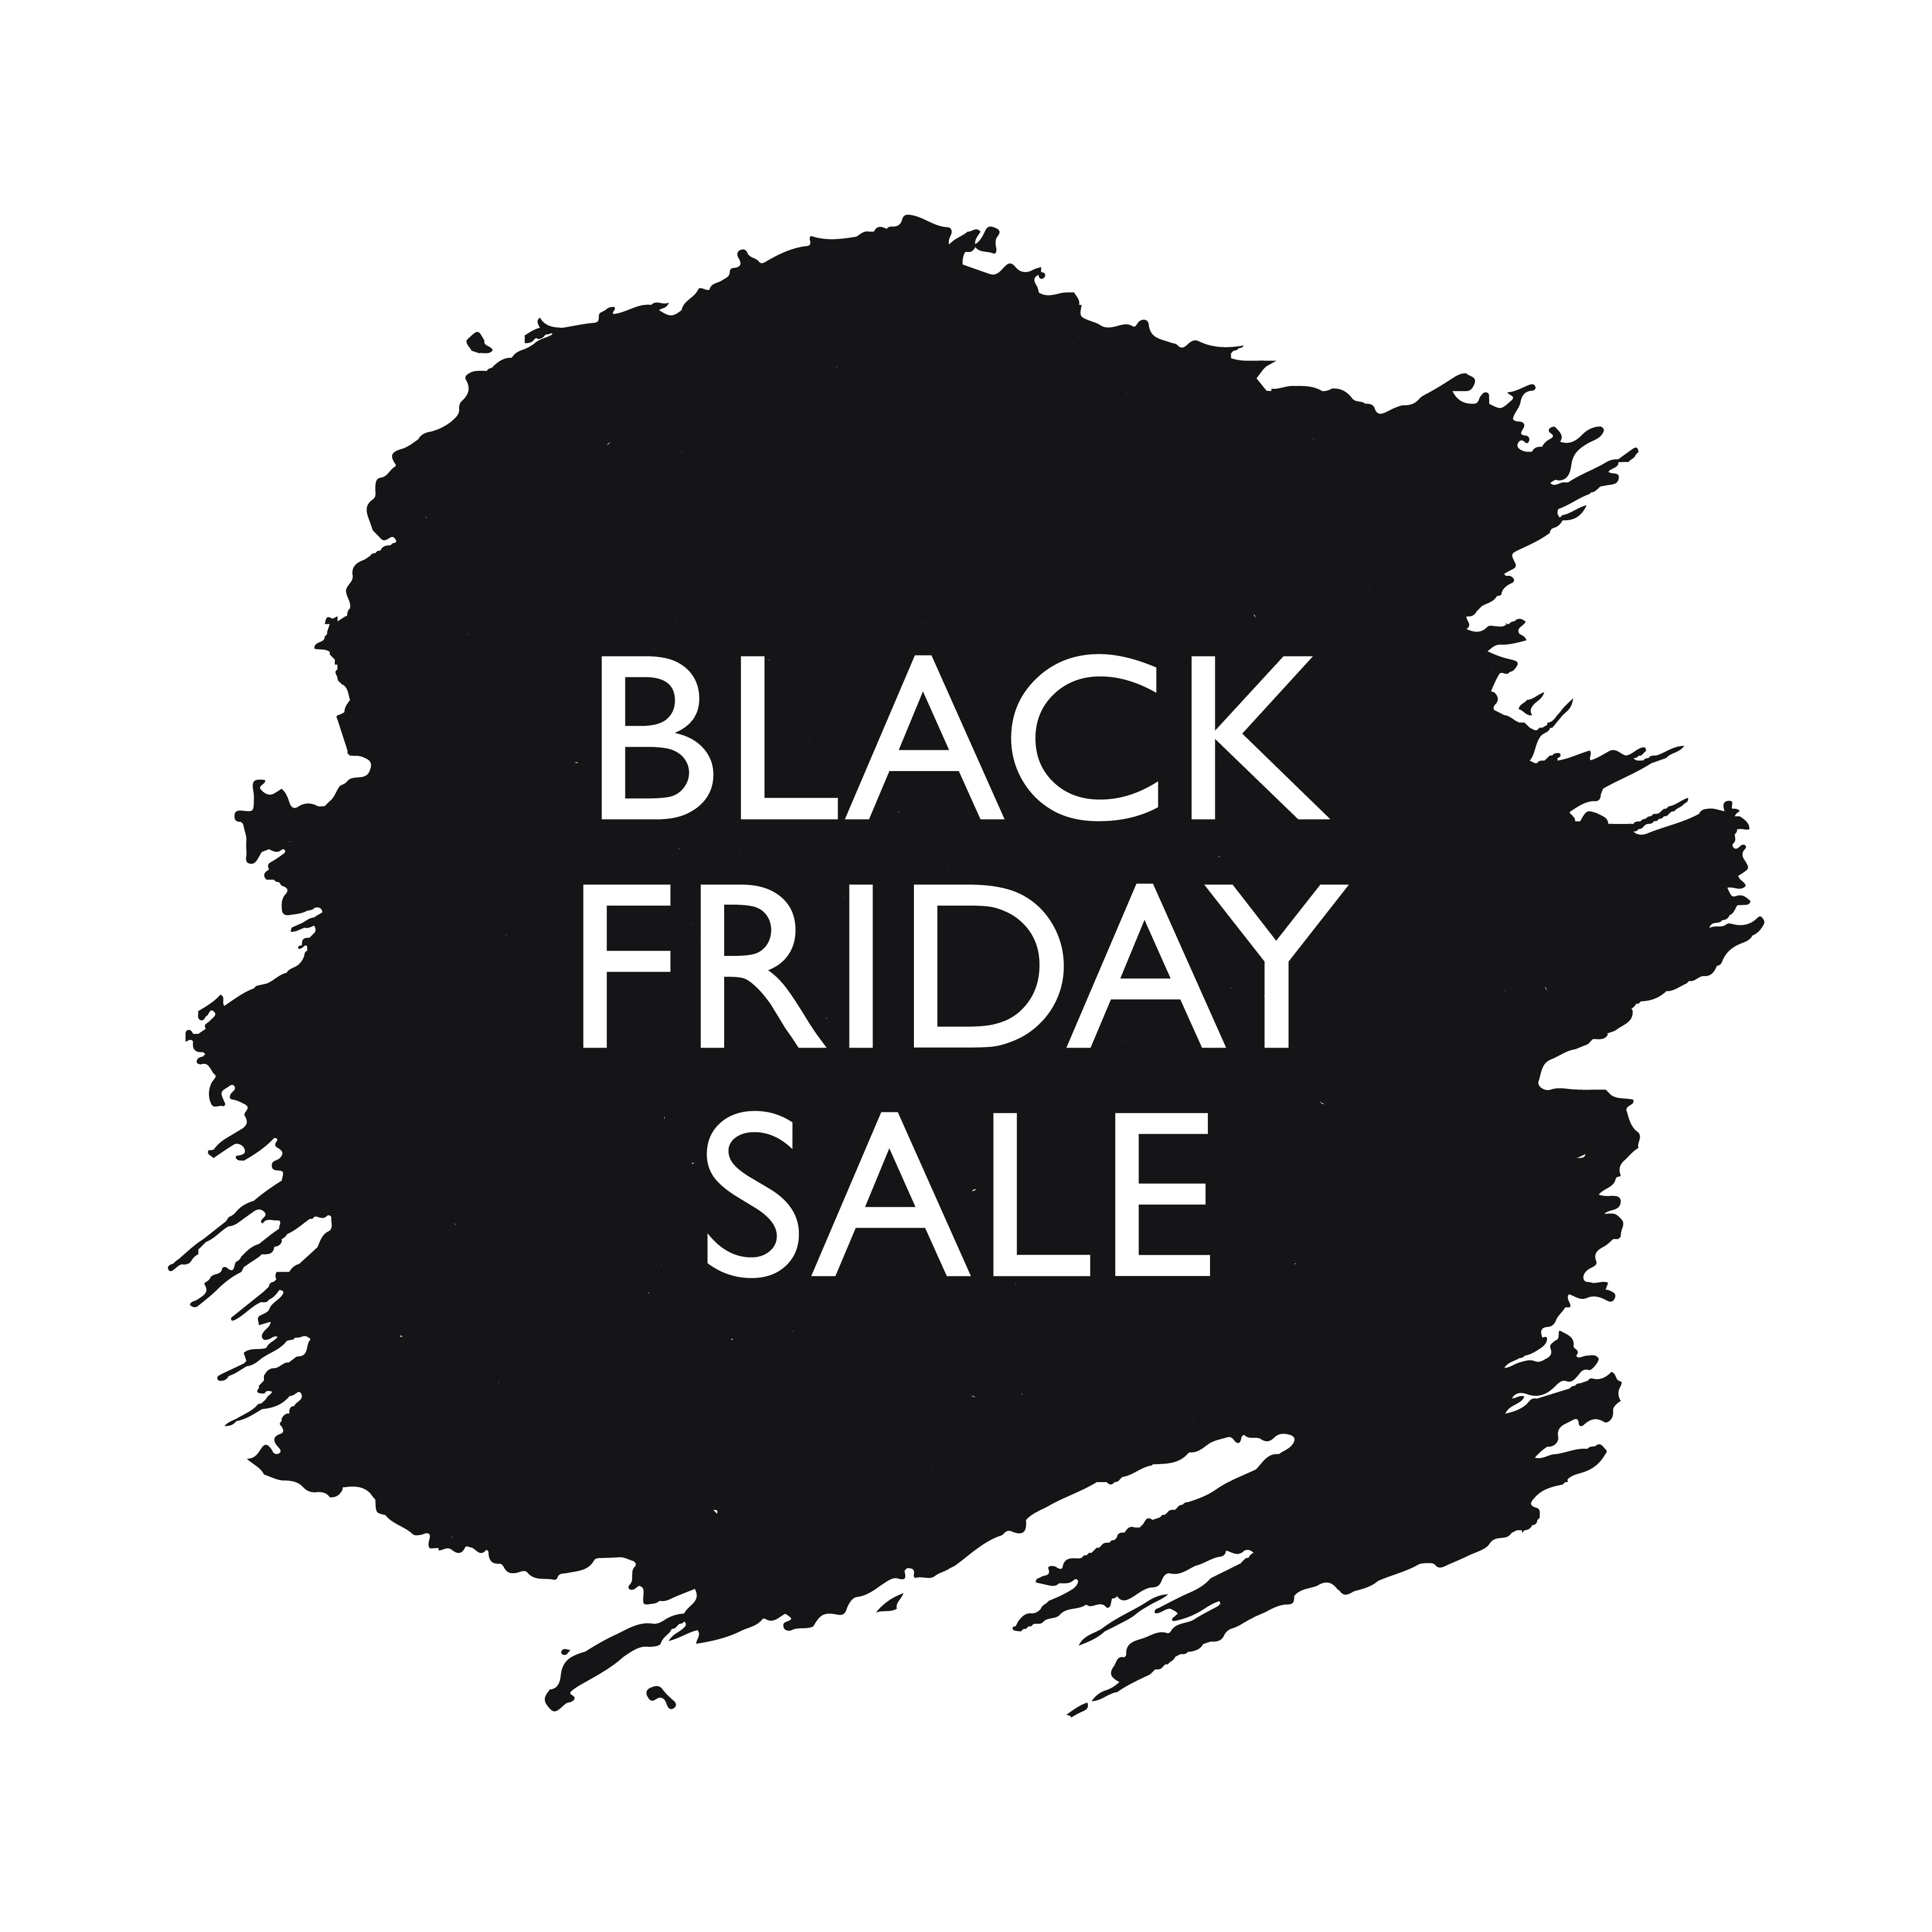 3 tips for getting your brand in shape for Black Friday